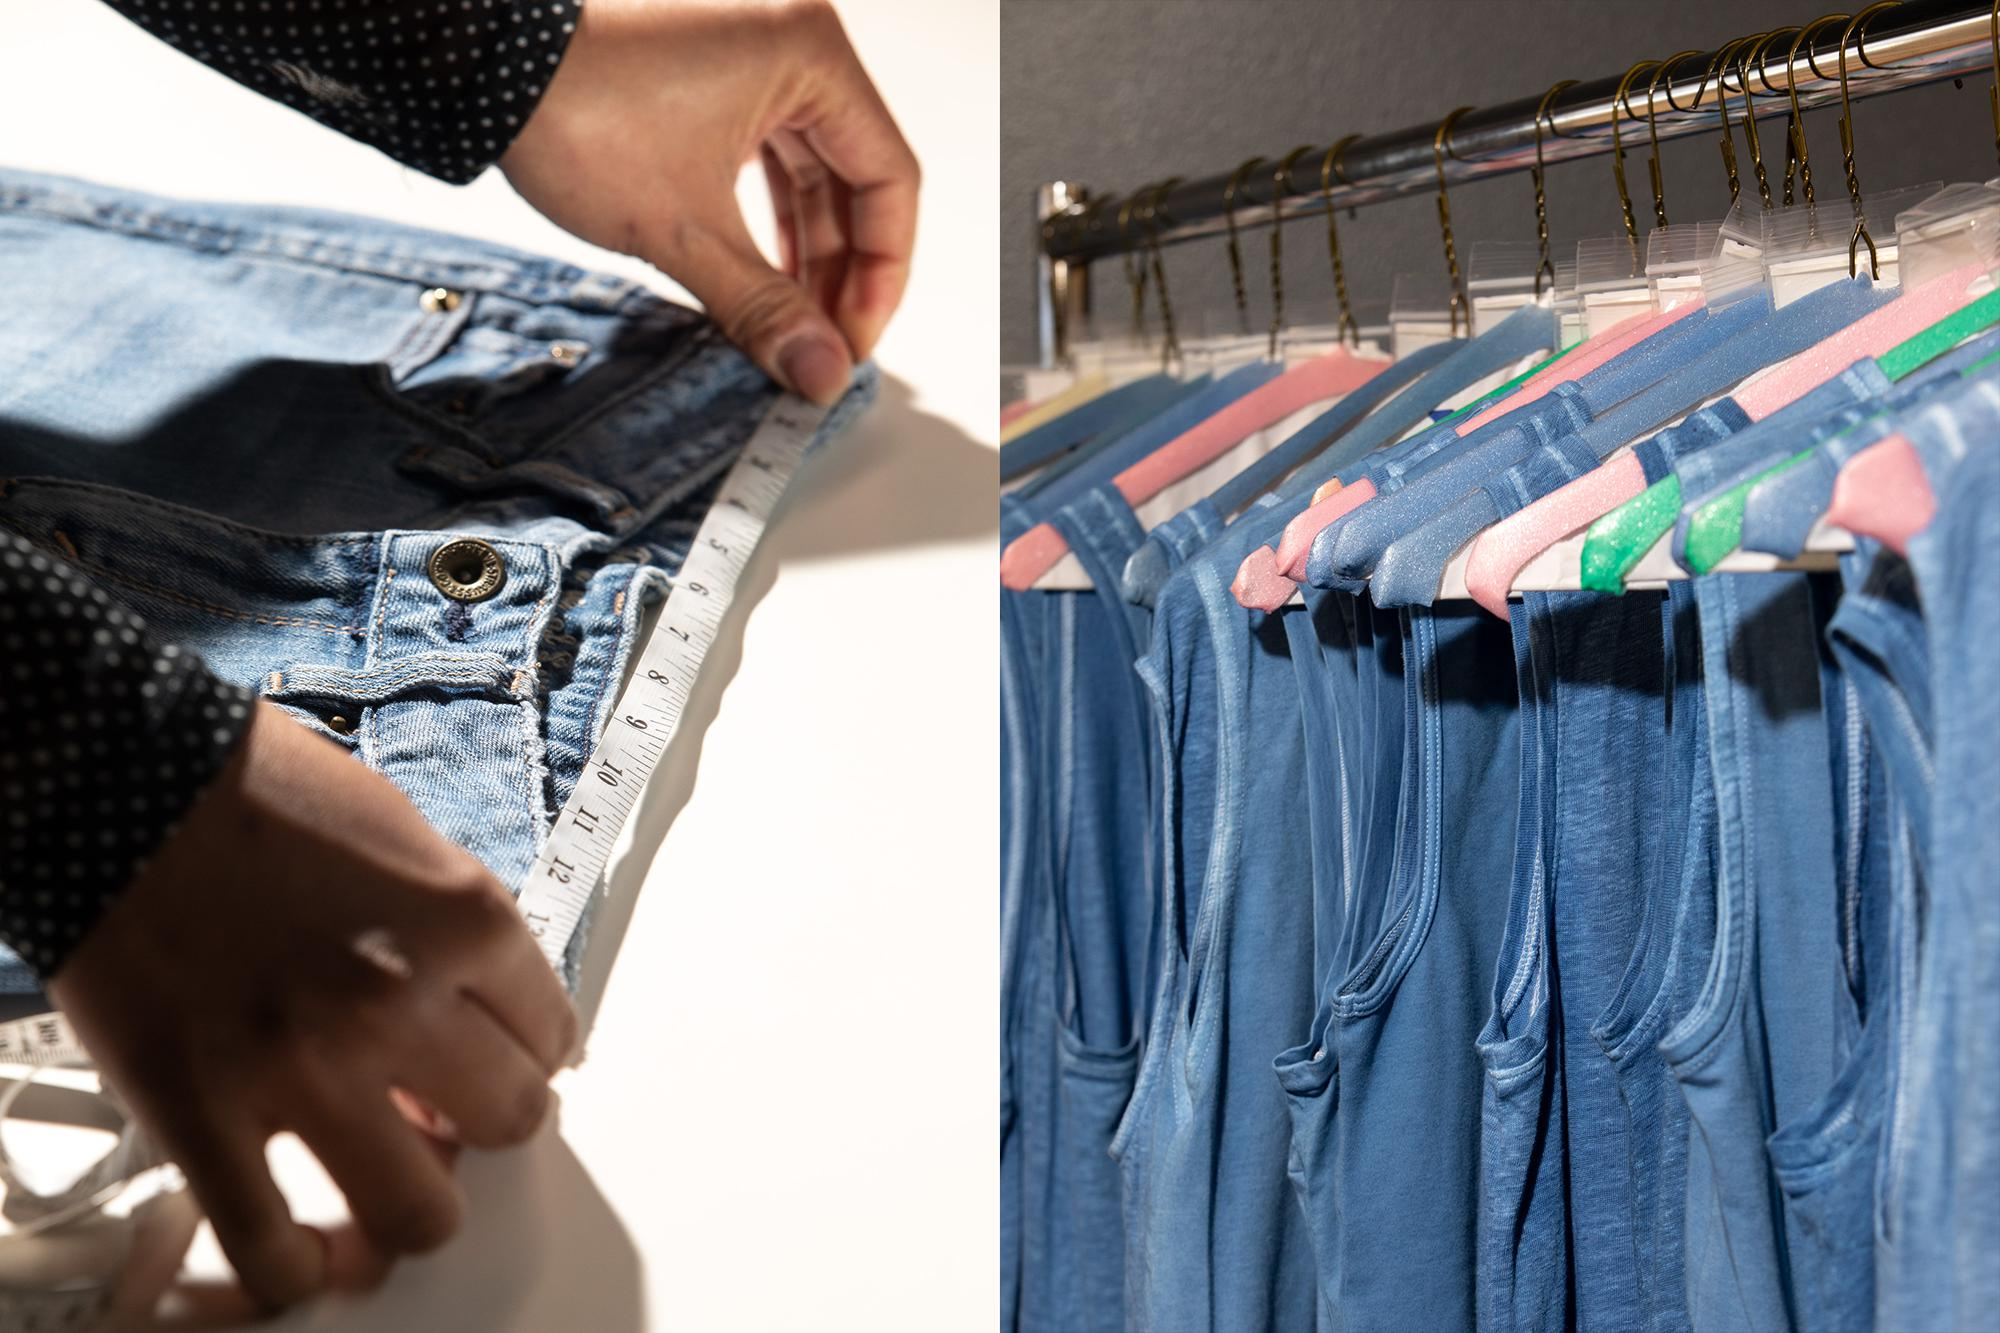 "Levi's jumped into resale after watching shoppers snap up vintage jeans elsewhere. ""Participating in resale is critical to staying relevant to our customers. It also helps Levi's reach new customers,"" says Jen Sey, brand president at Levi Strauss & Co."